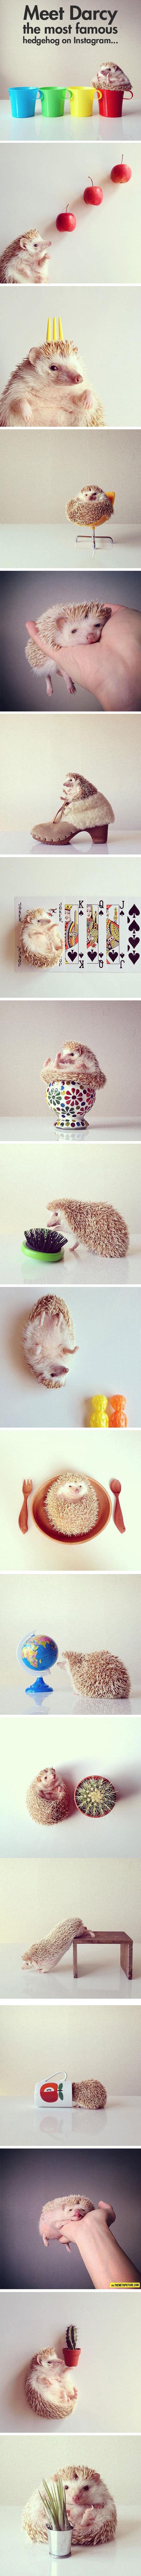 cool-hedgehog-Instagram-Darcy-hand